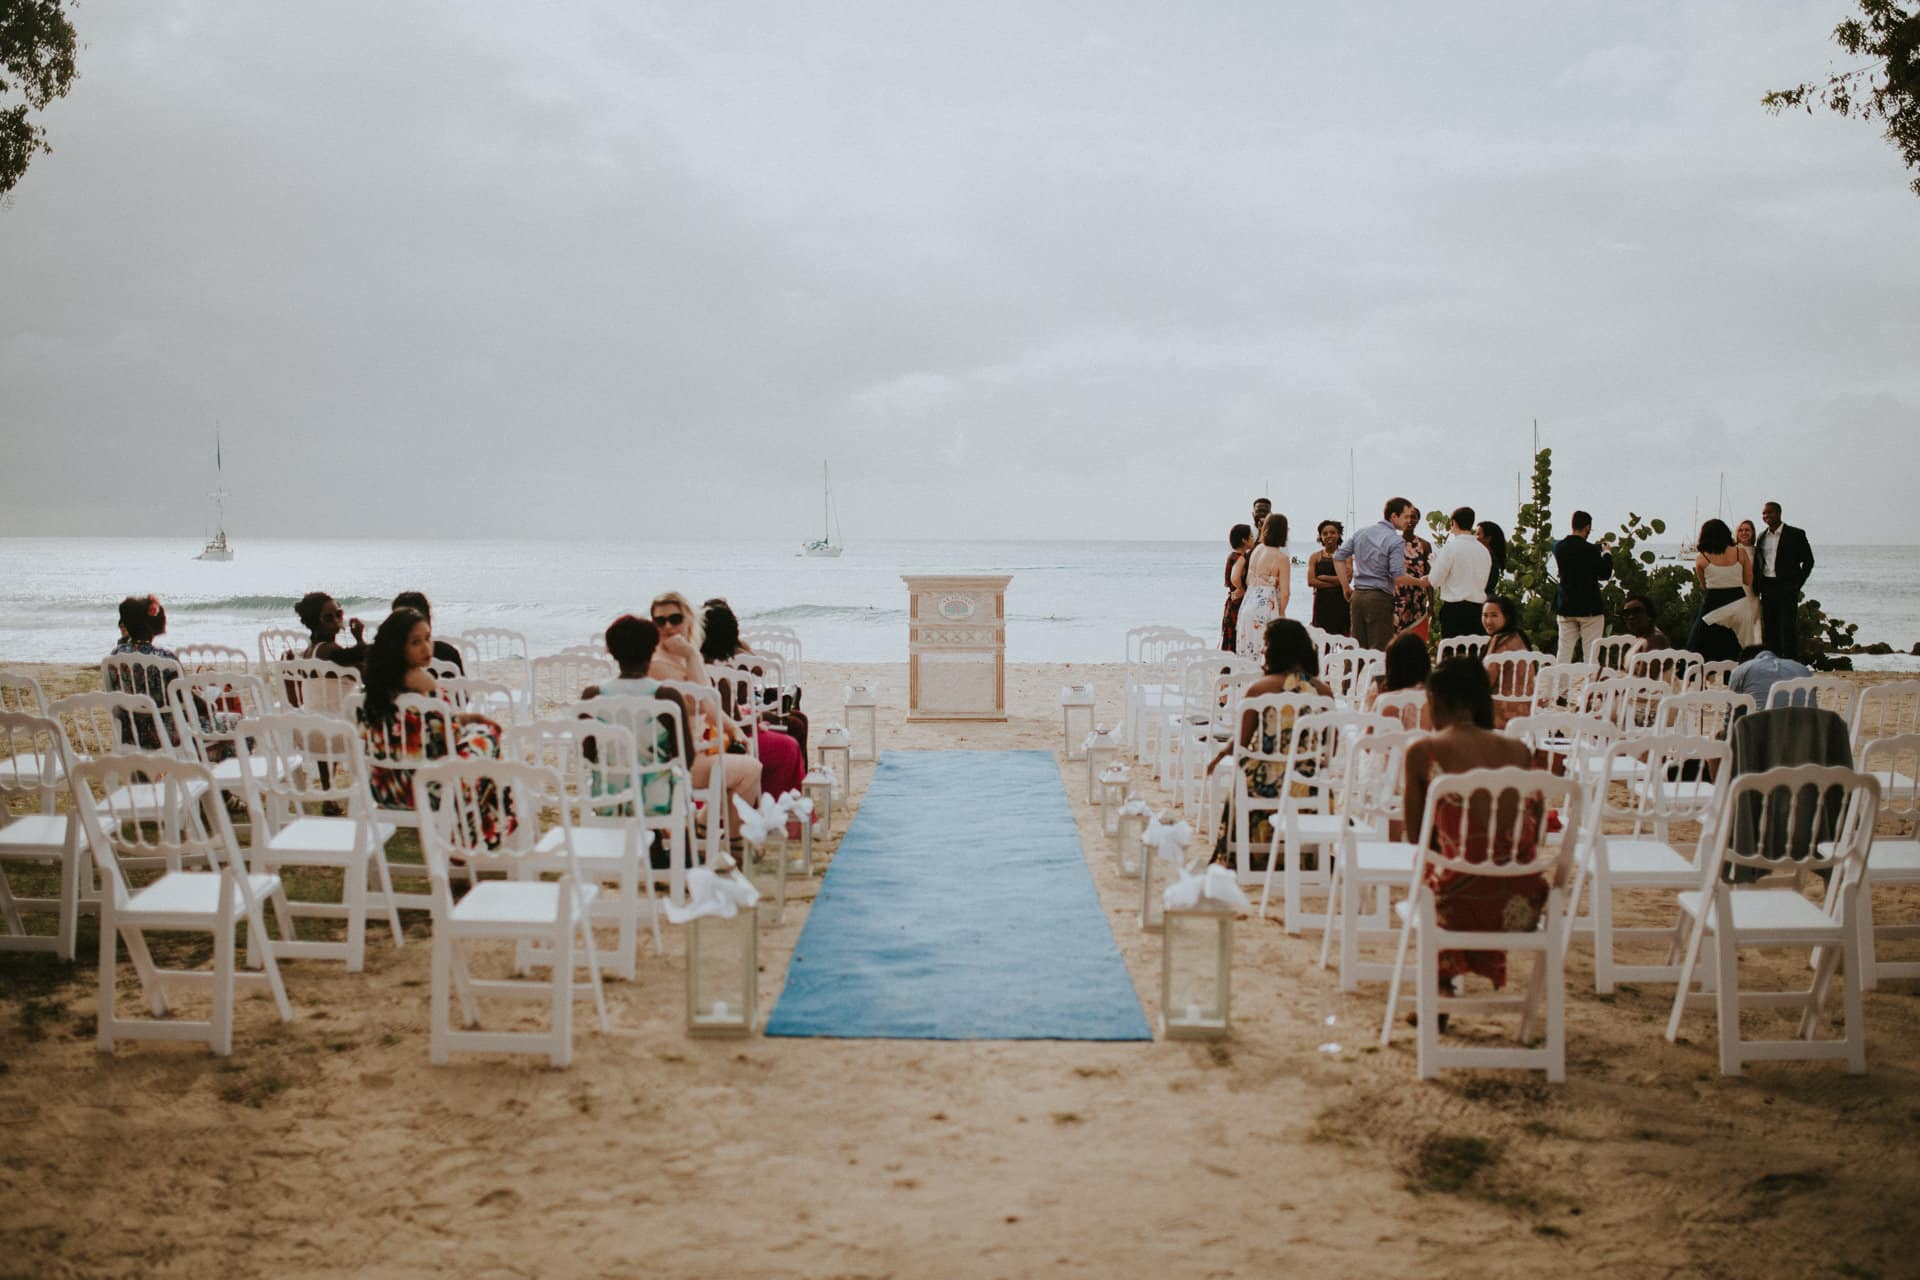 An aisle and chairs are standing right at the beach.